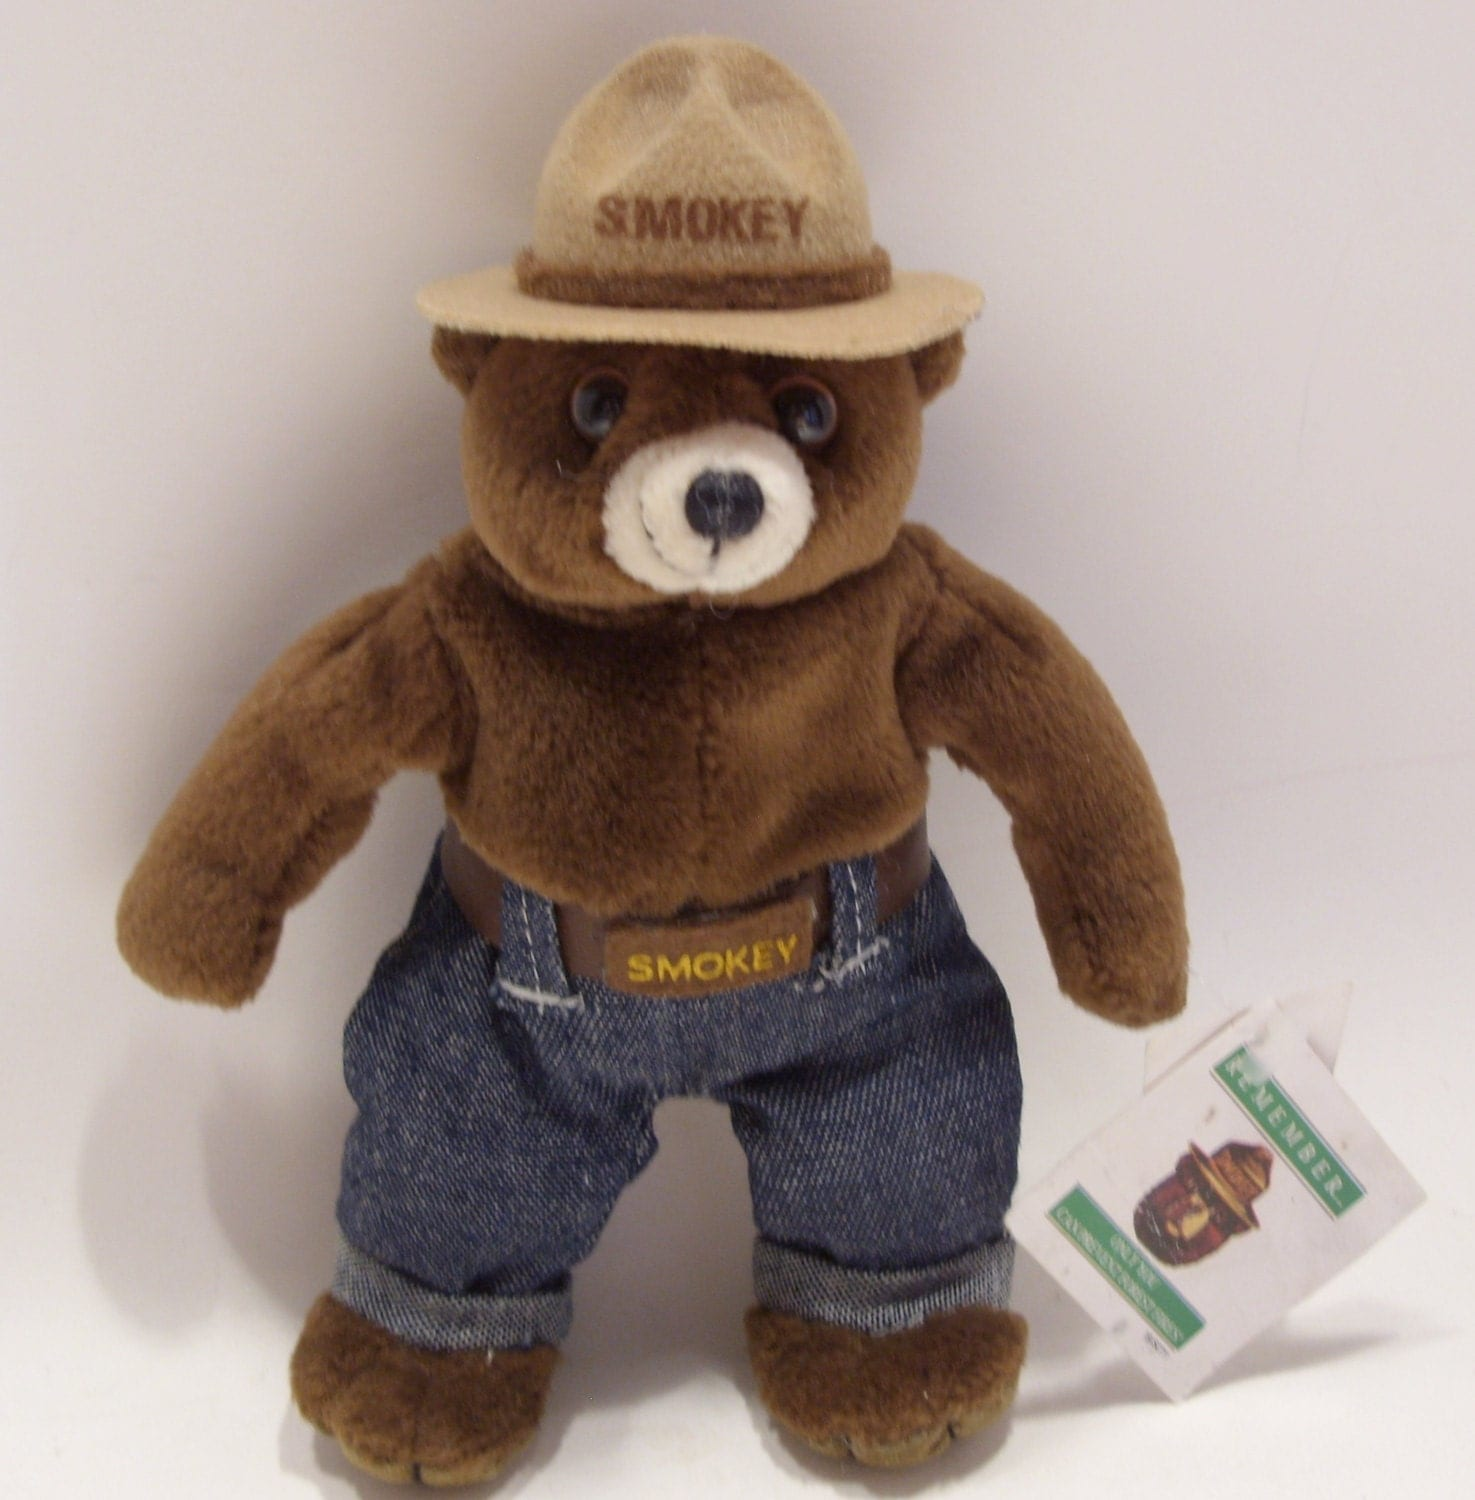 smokey the bear Feel free to give some side-eye to anyone who doesn't have a pail of water near their campfire even my little friend knows that and, if the campers don't get the hint, please step in and talk to them about it.